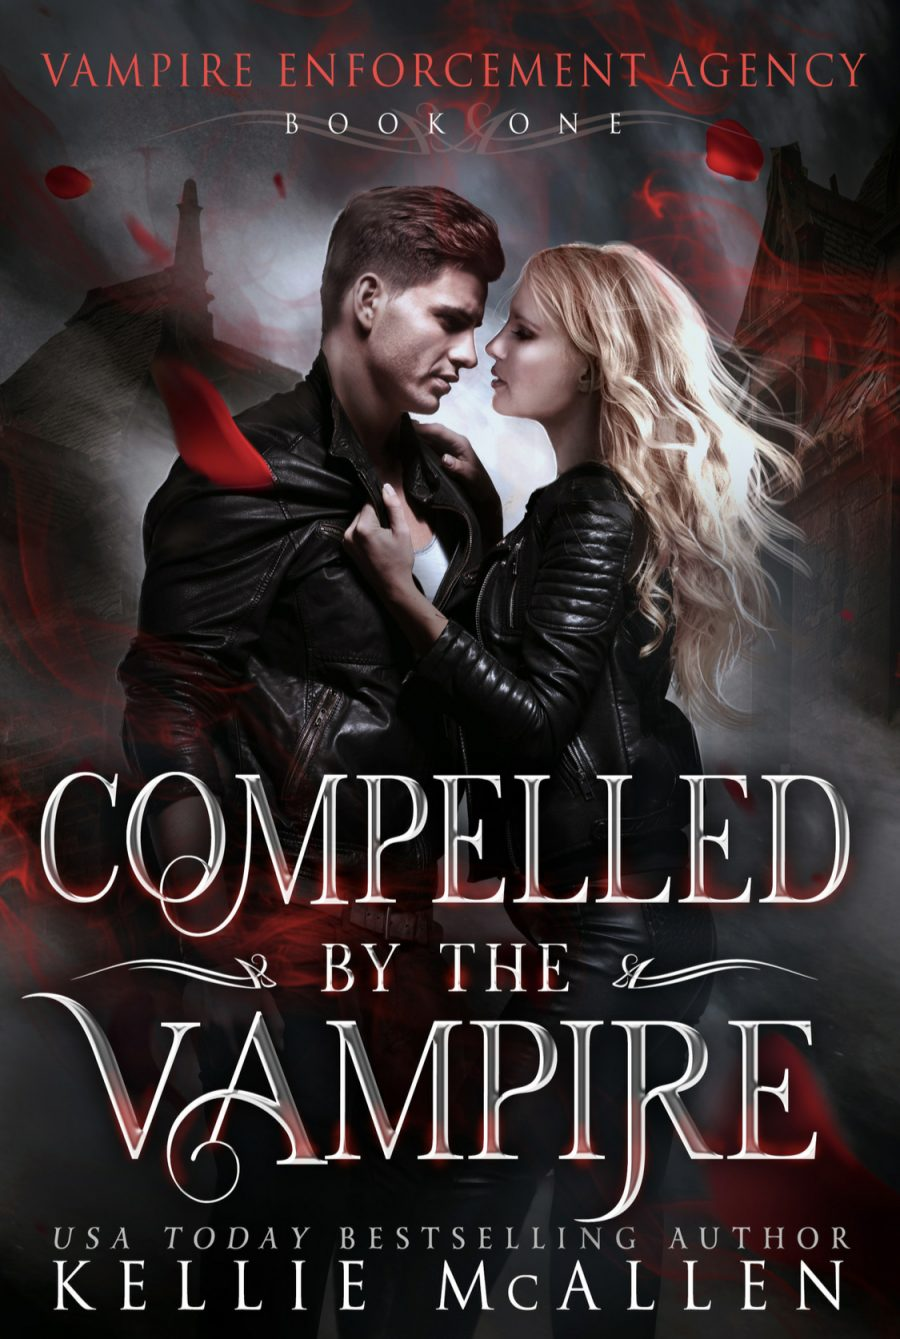 Compelled By The Vampire by Kellie McAllen - A Book Review #BookReview #Review #PNR #Vampire #Paranormal #Series #Book1 #Agency #Intrigue